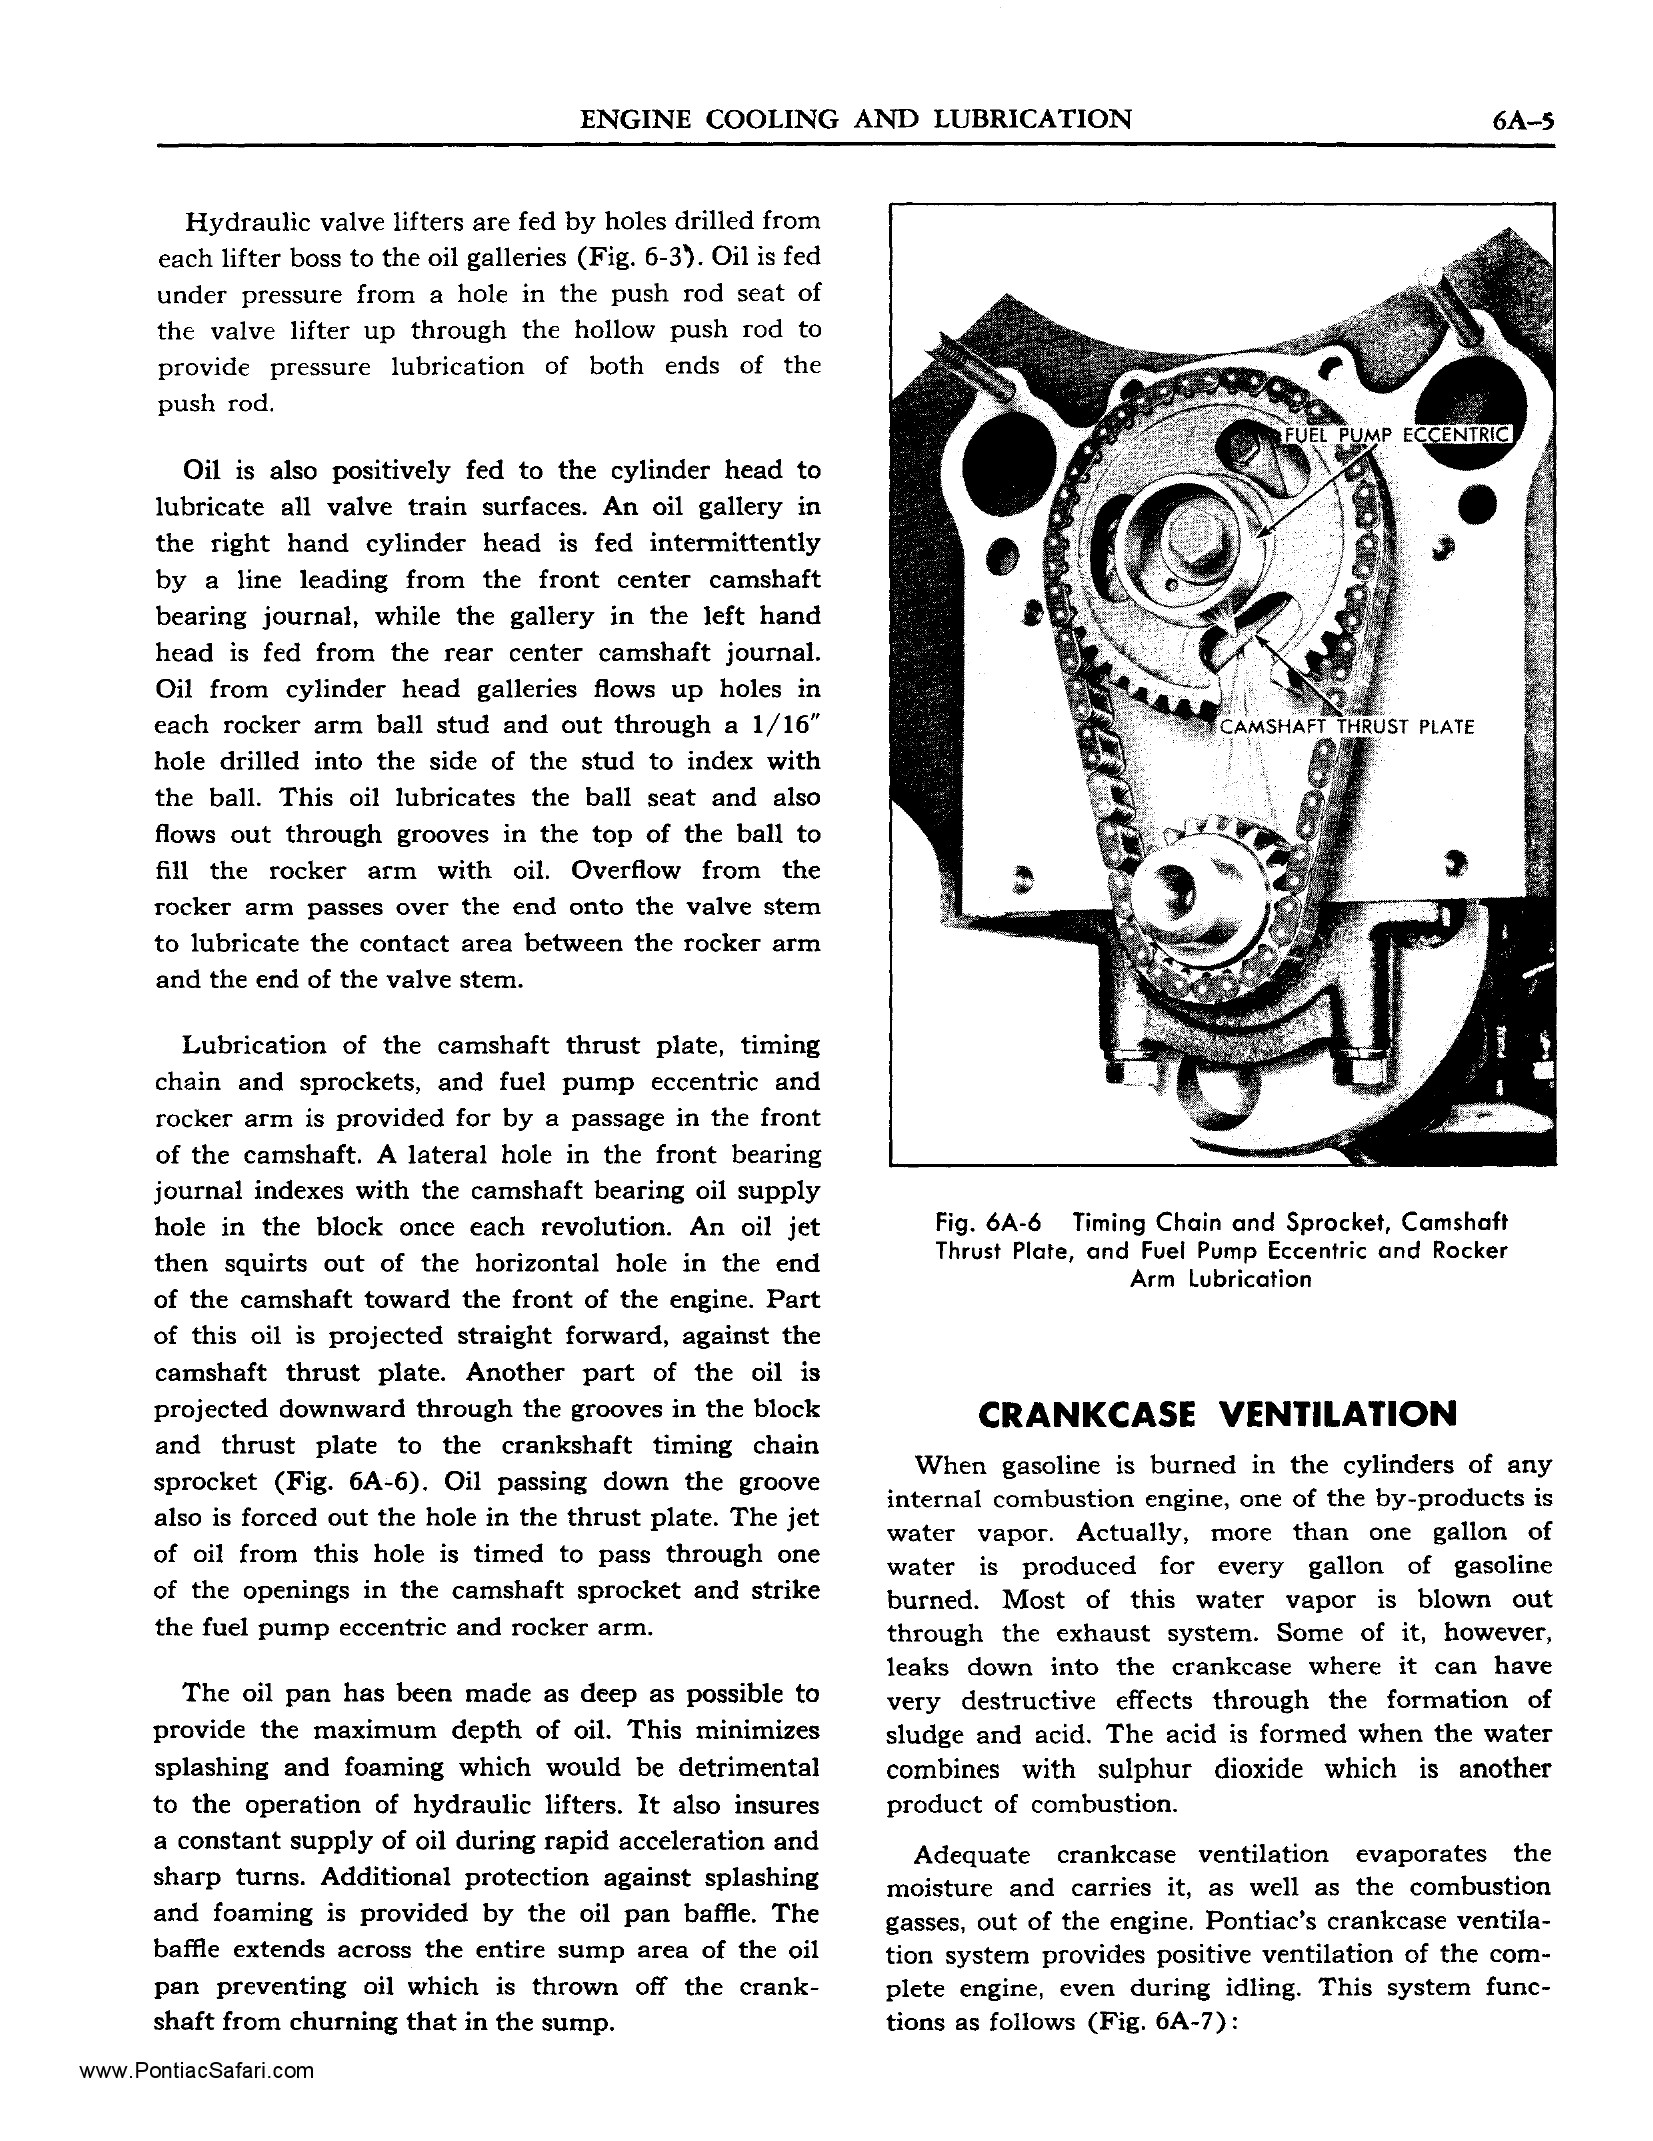 1955 Pontiac Shop Manual- Engine Cooling and Lubrication